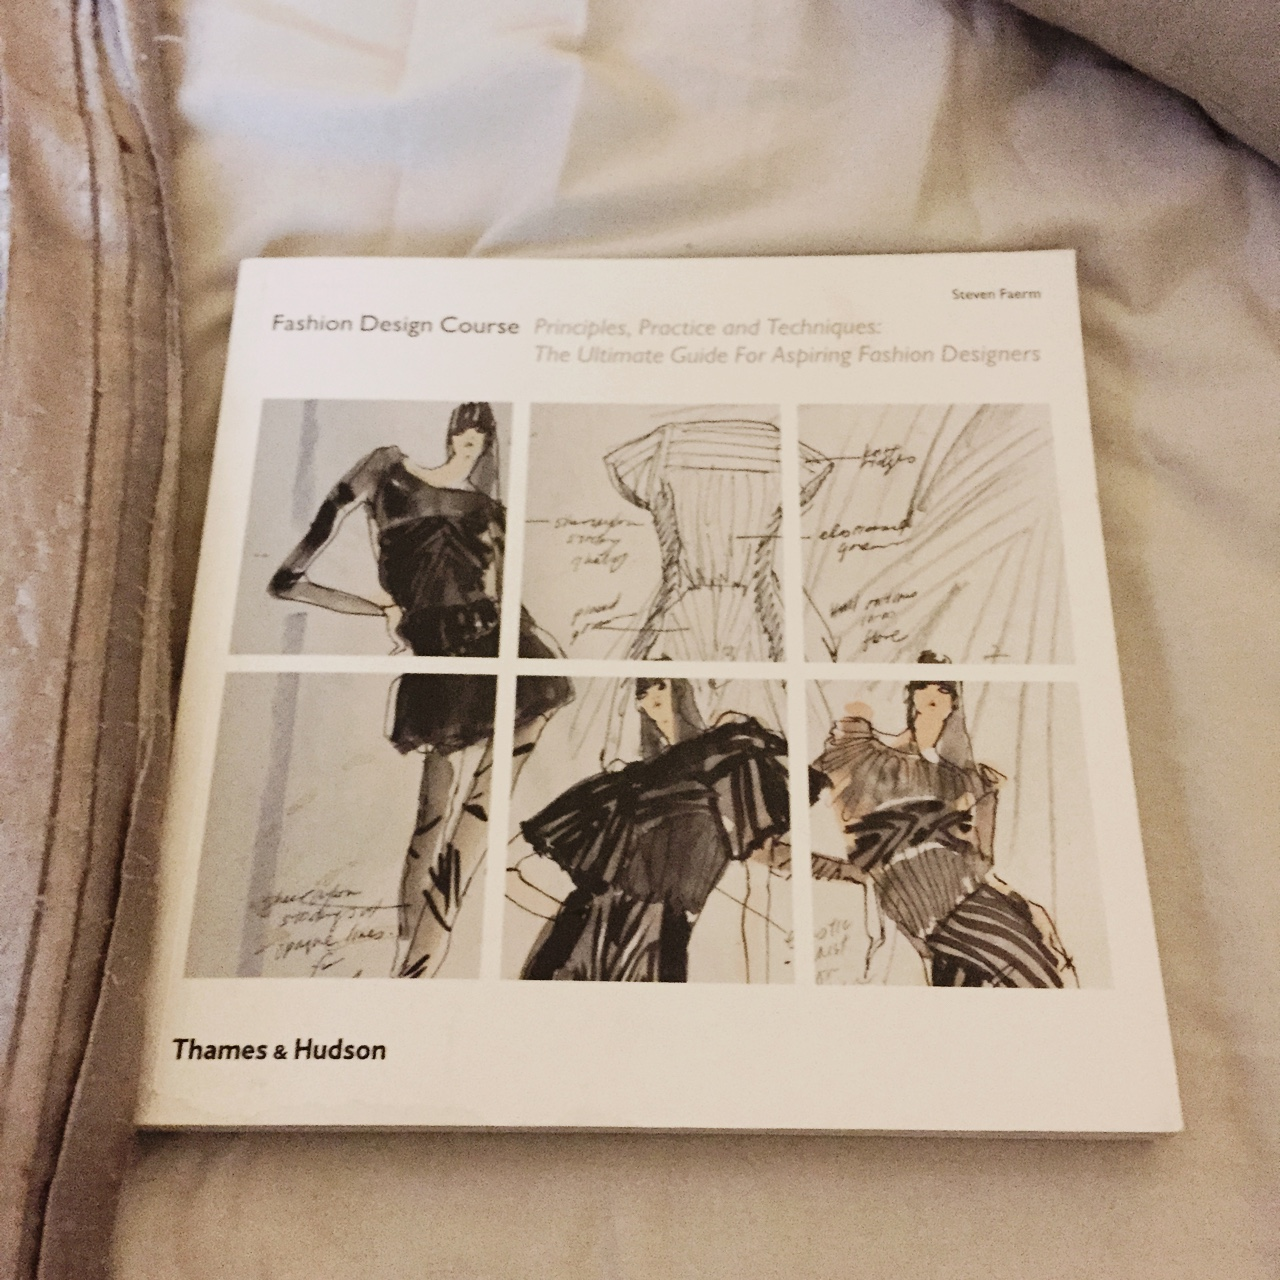 Fashion Design Course Book By Thames And Hudson Depop